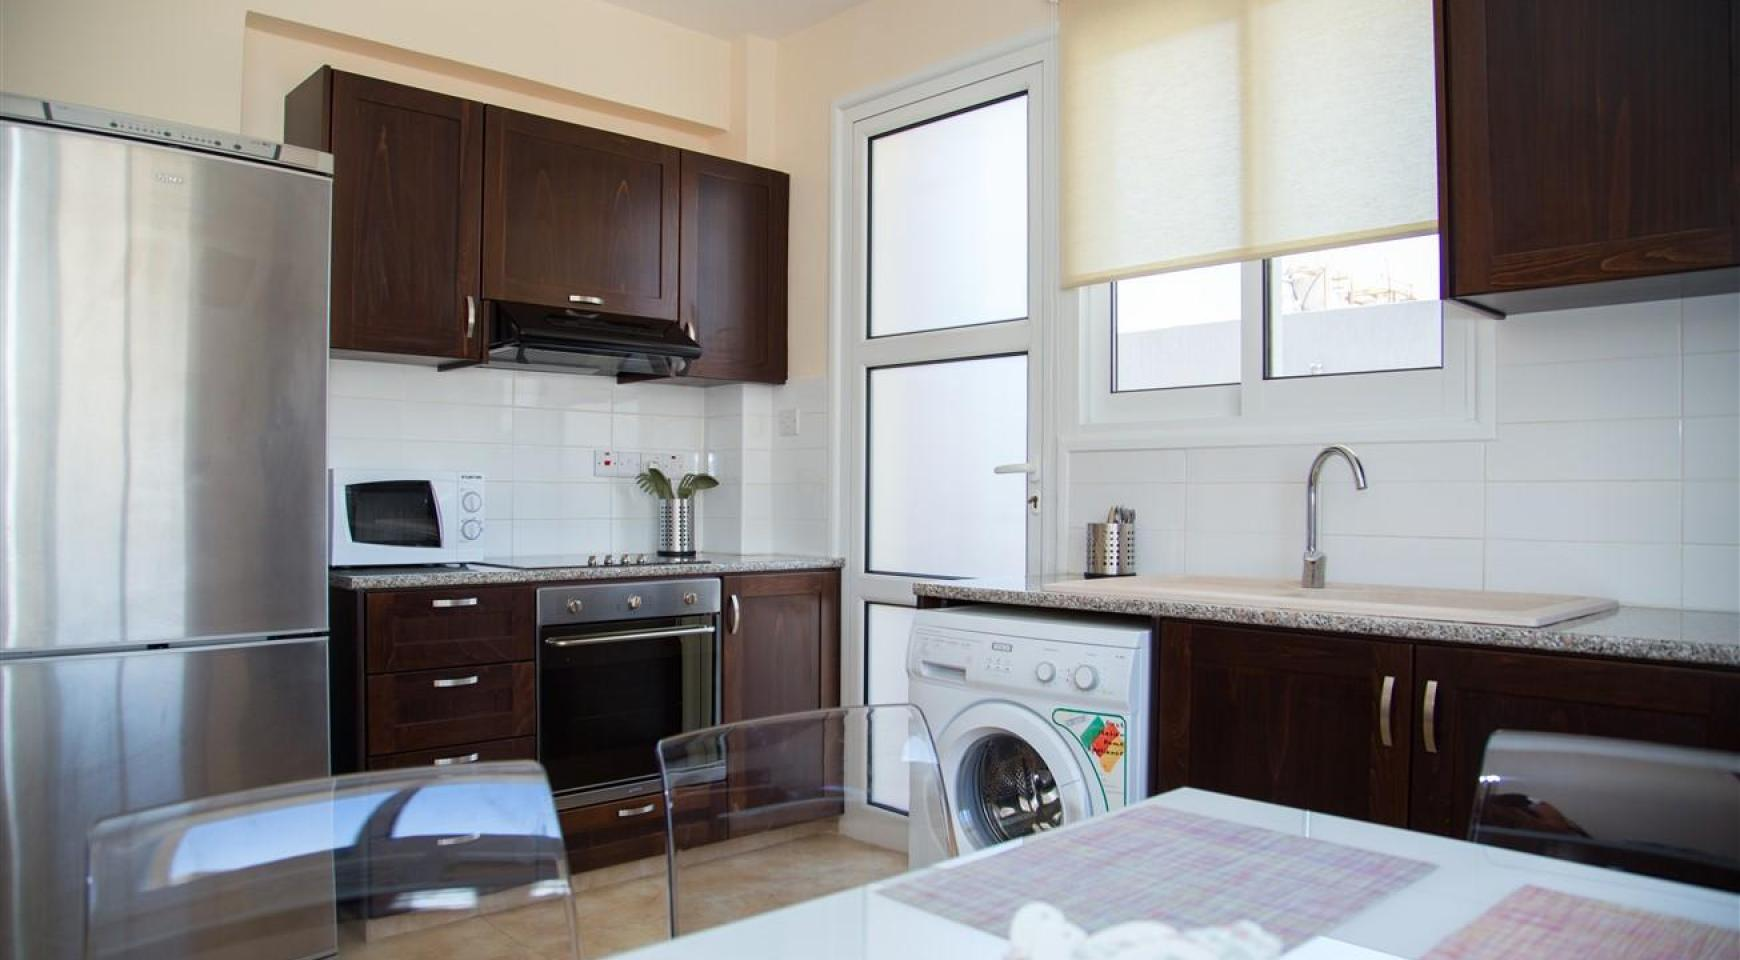 Luxury One Bedroom Apartment Frida 104 in the Tourist Area - 5